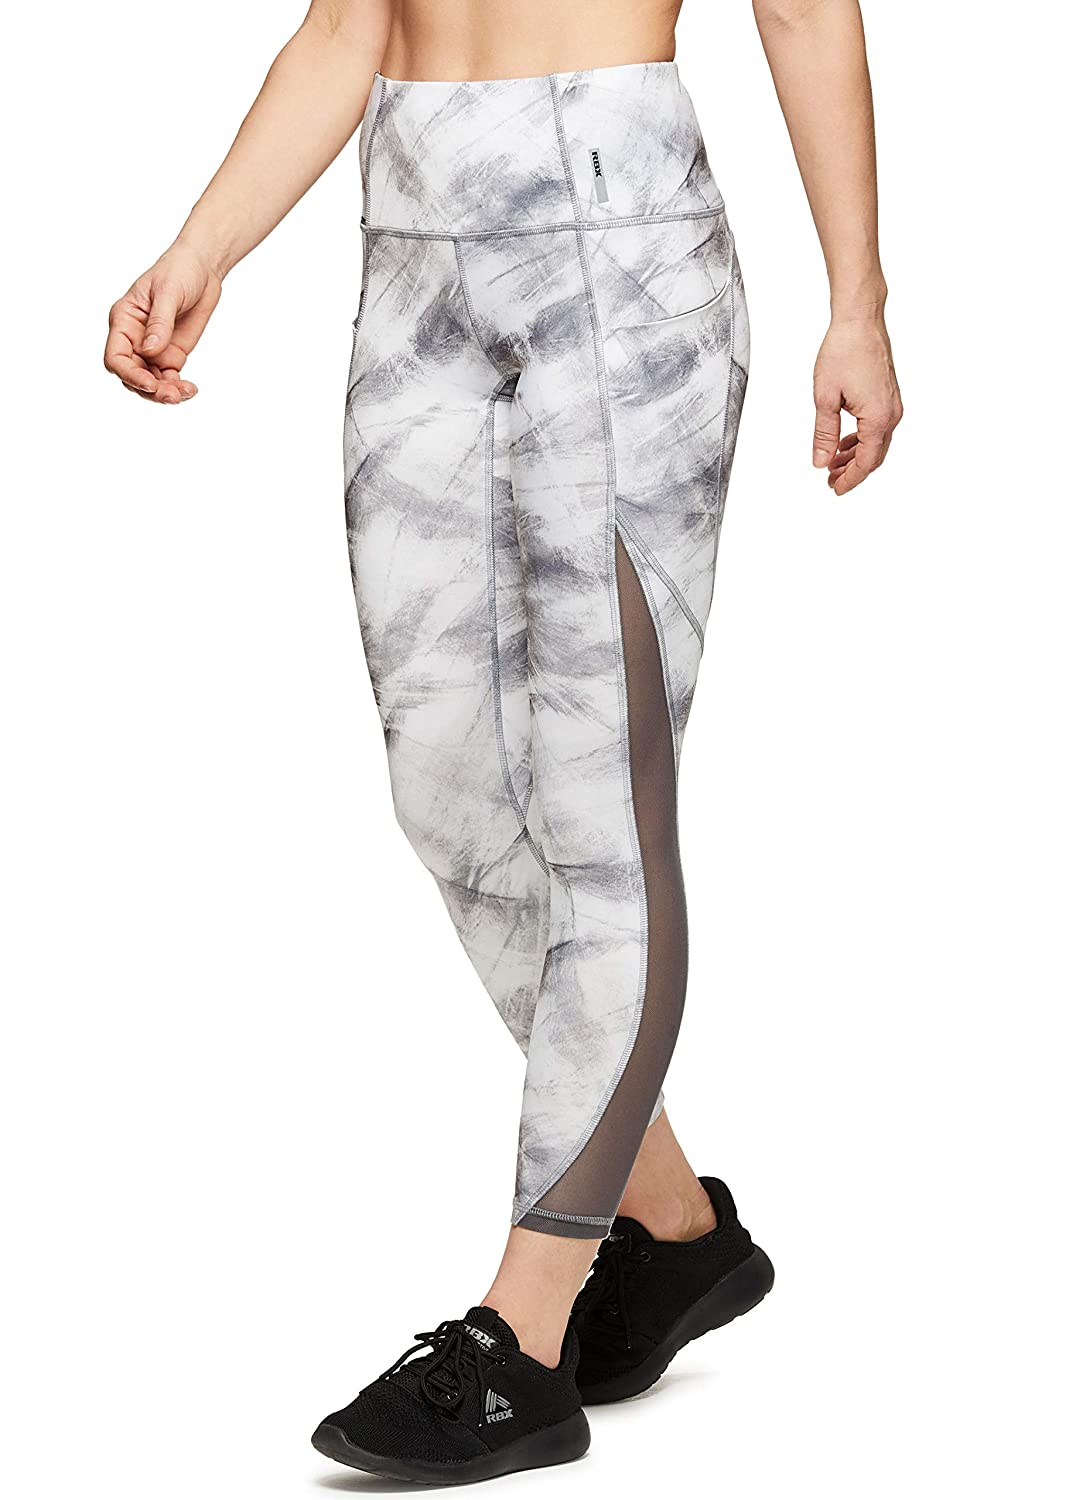 e7a6aa5c75b30 Amazon.com: RBX Active Women's Printed Running Workout Yoga Leggings:  Clothing